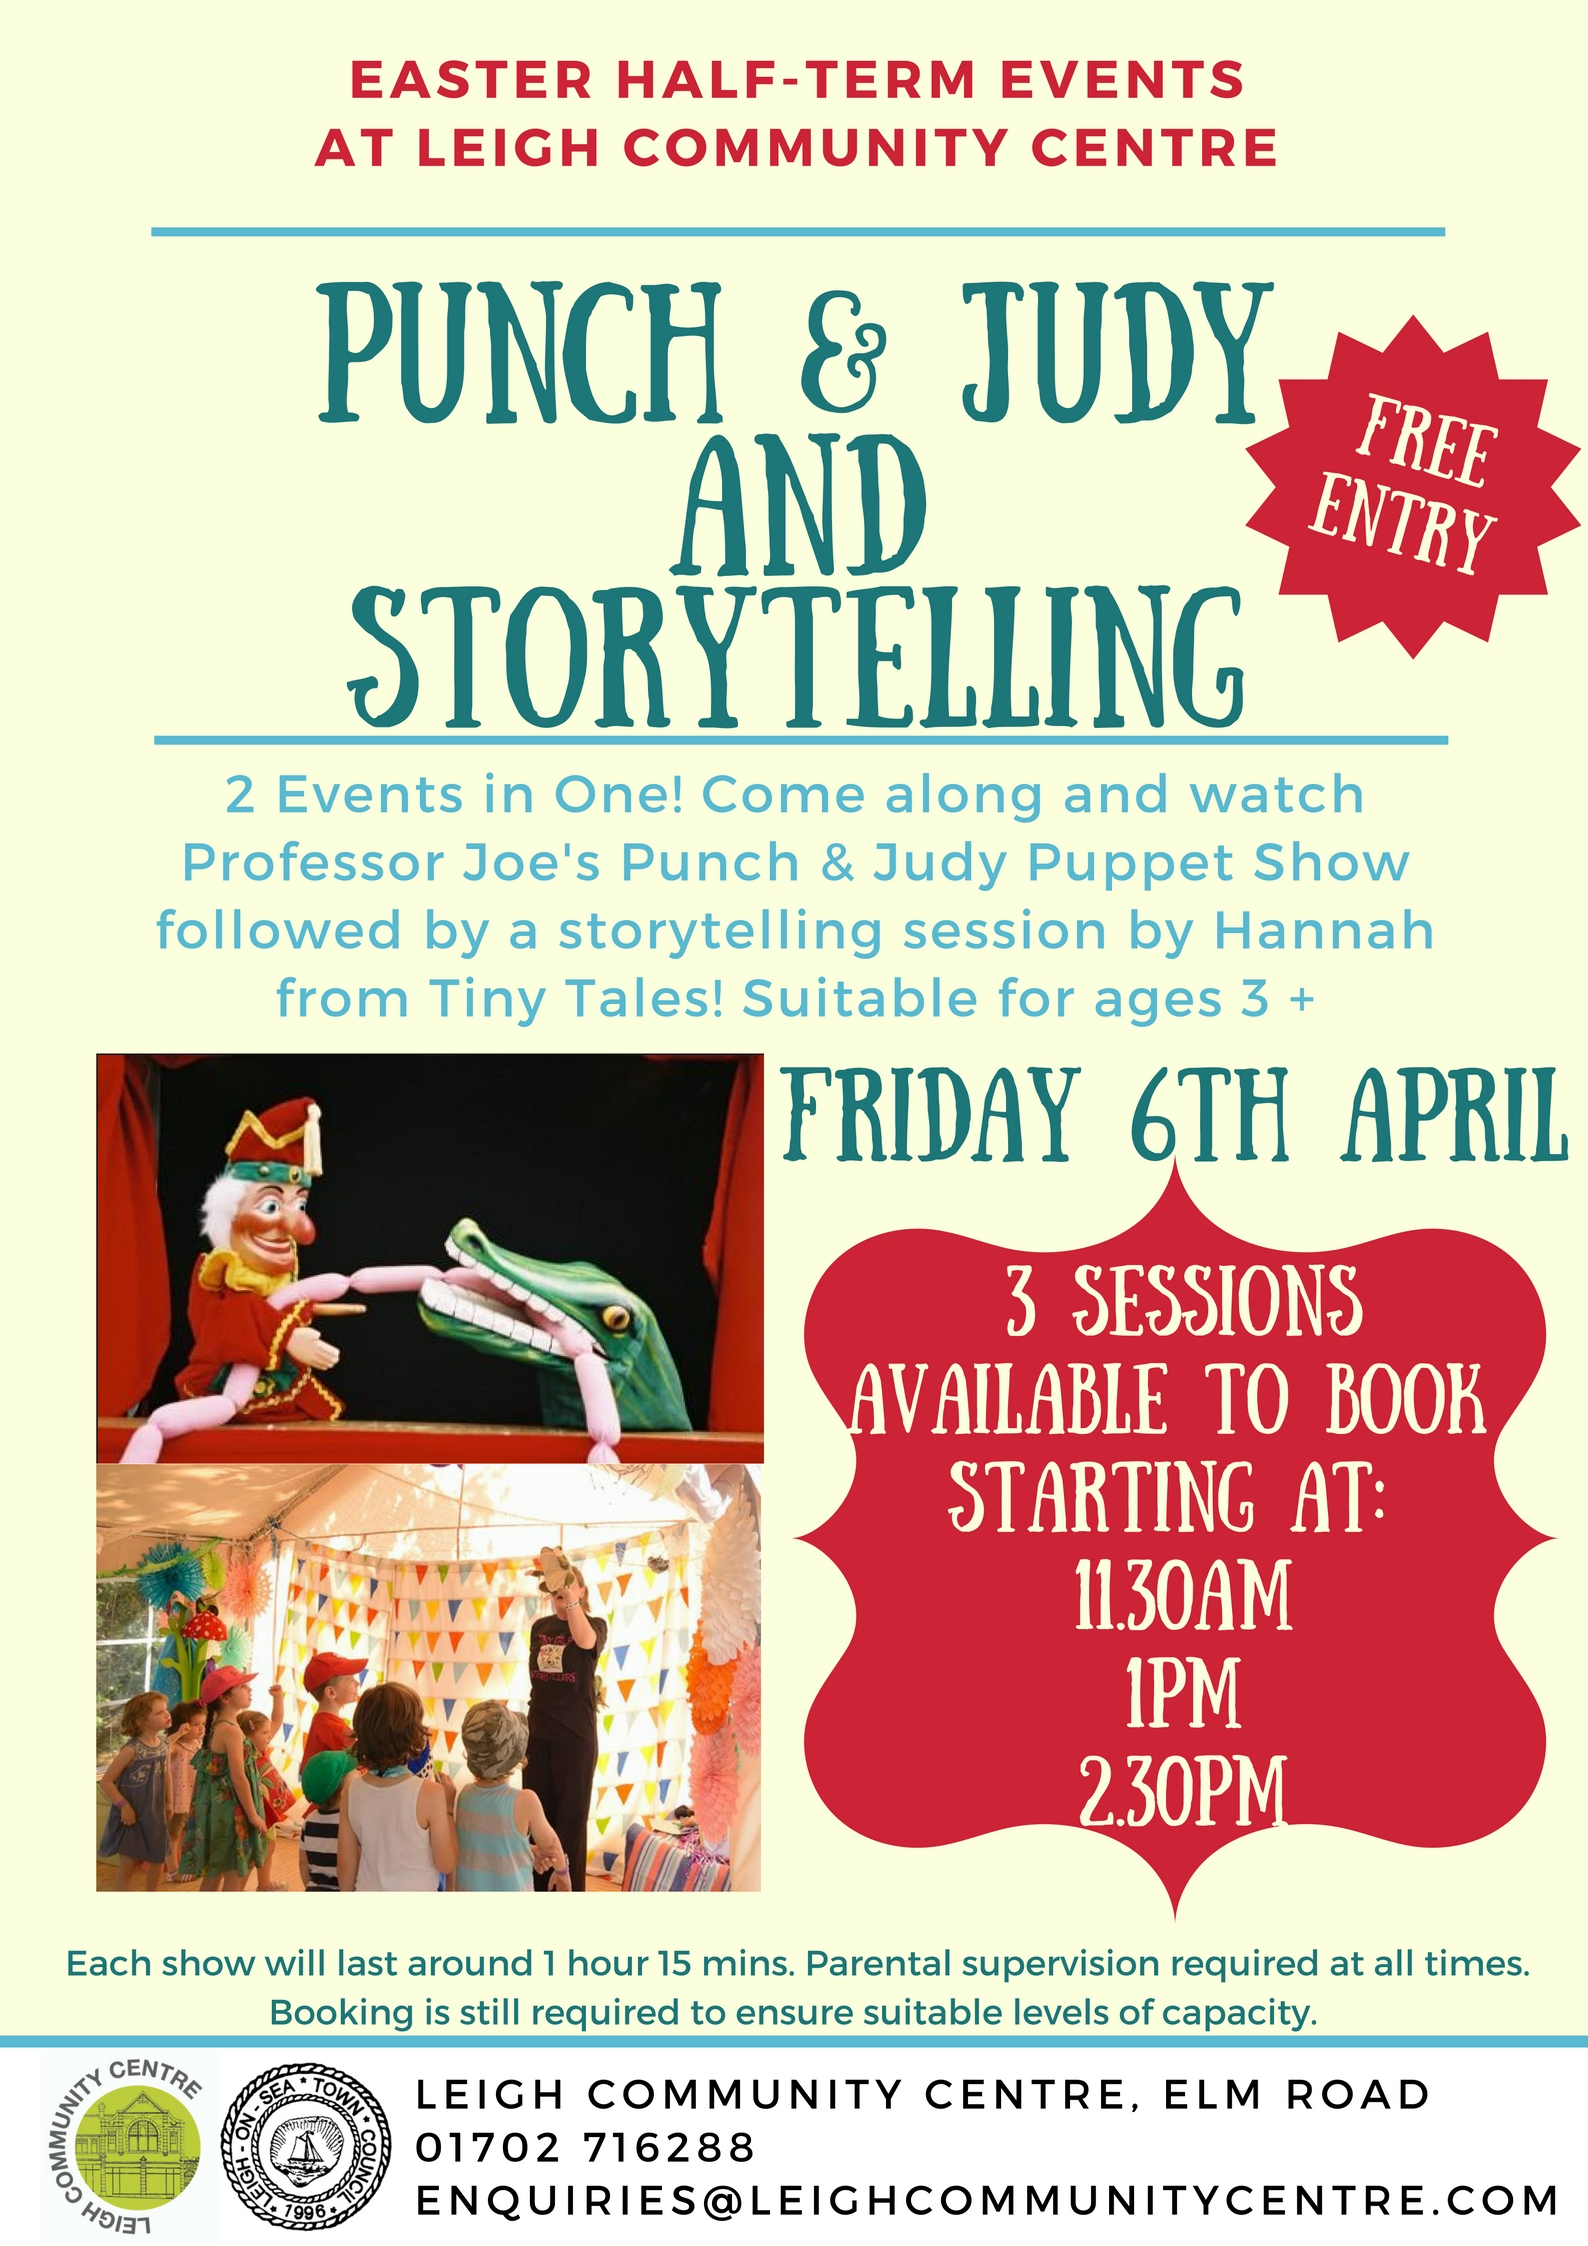 Punch & Judy and Storytelling FREE Event